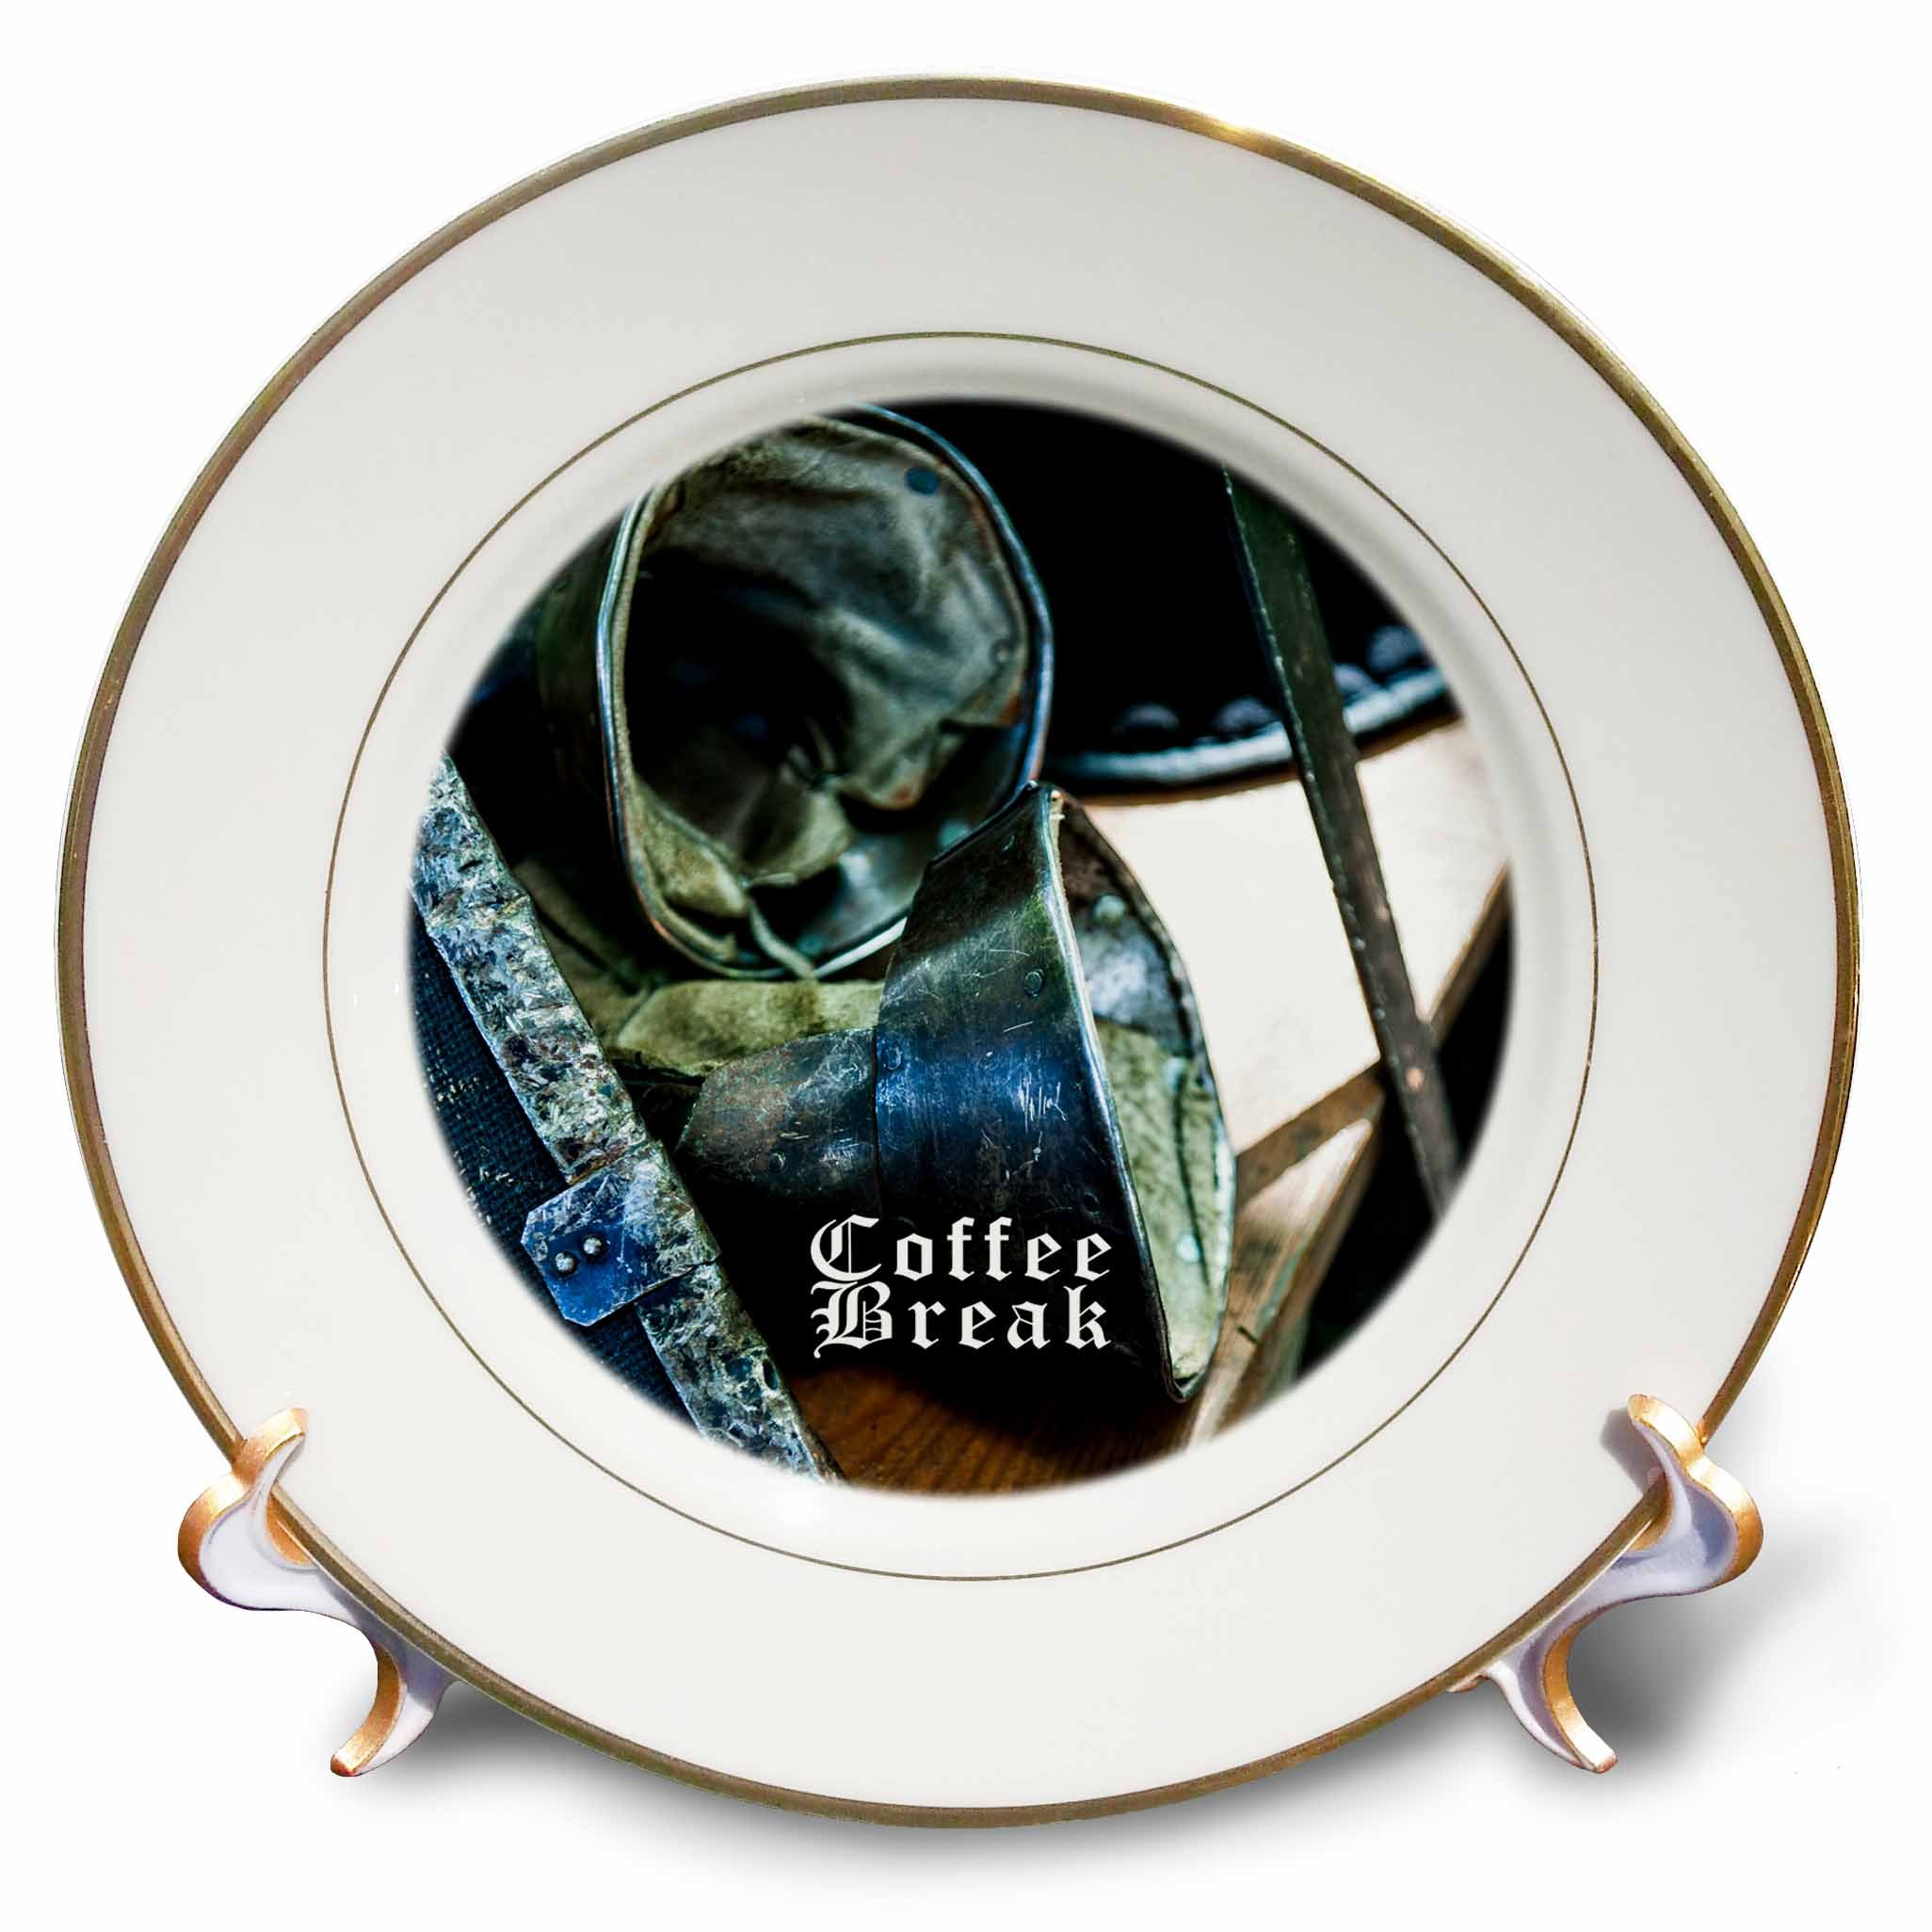 3dRose Alexis Photography - Objects Armor - Medieval shield, combat metal gloves, sword. Coffee break - 8 inch Porcelain Plate (cp_271938_1)